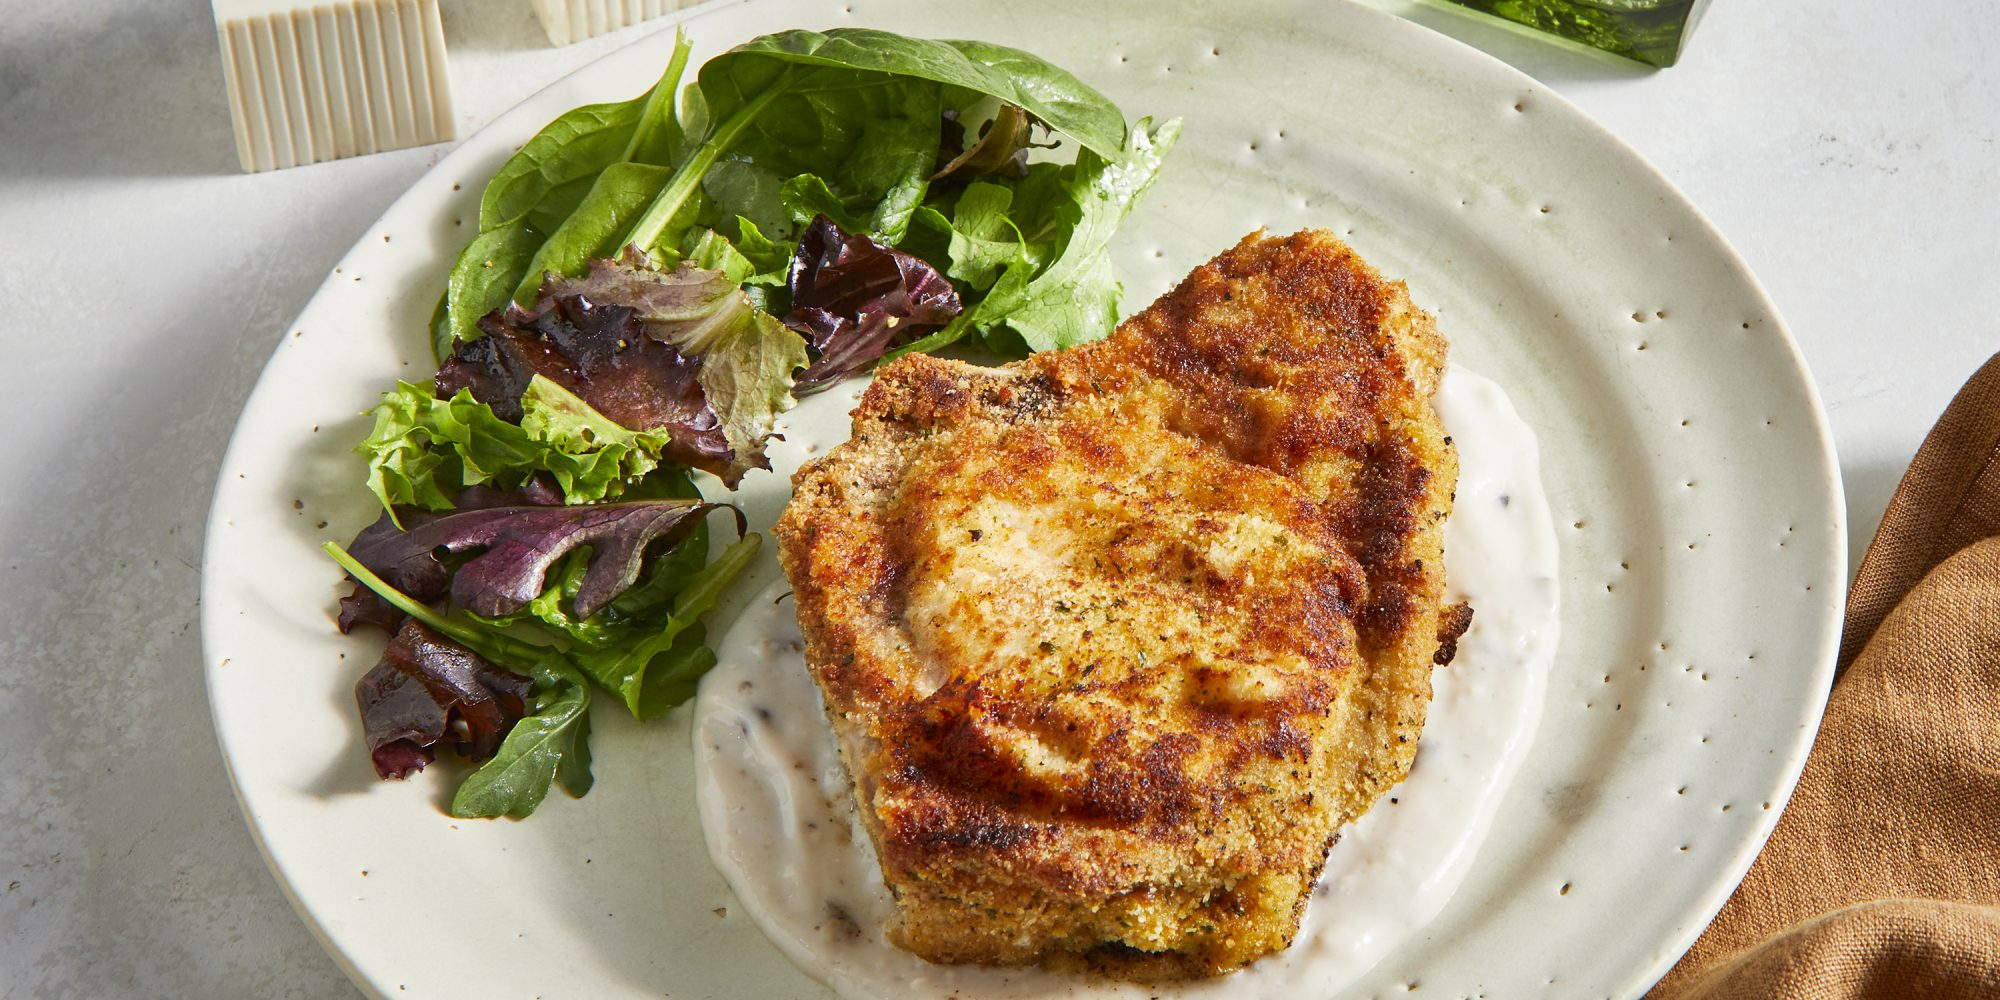 High angle view on a baked pork chop plated on a mushroom cream sauce and served with dressed mixed greens.